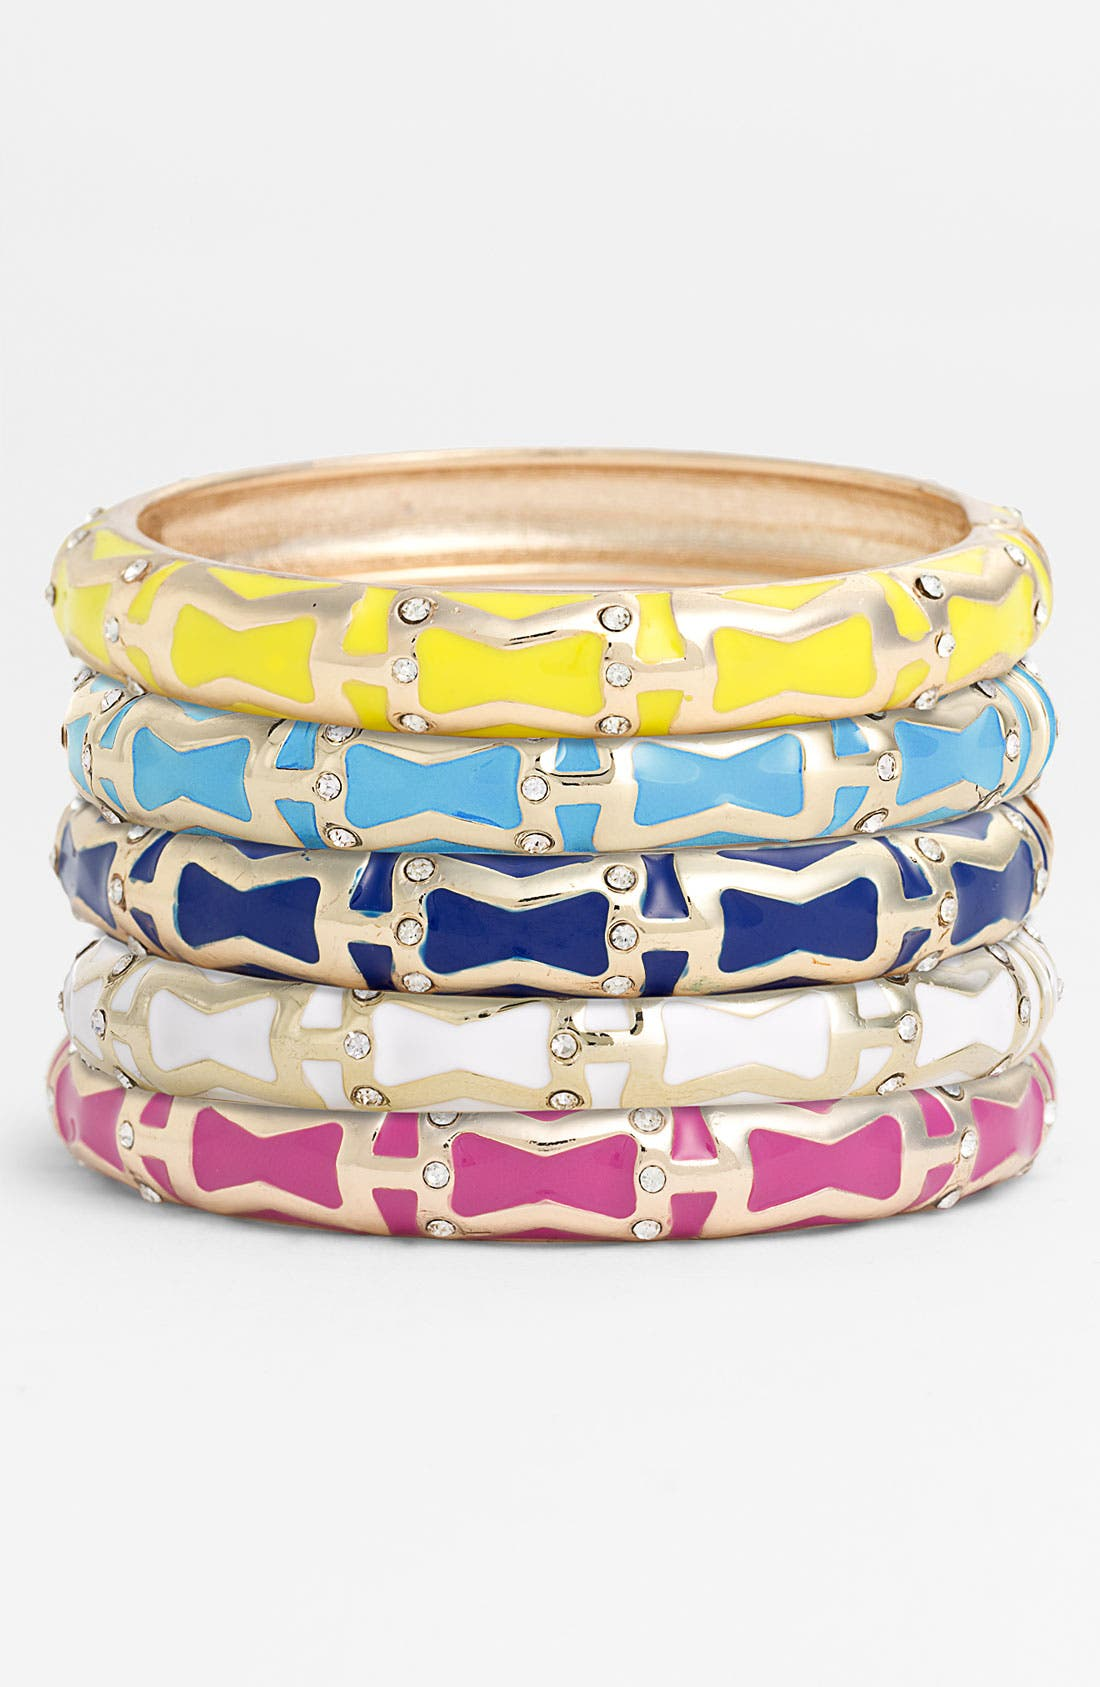 Alternate Image 1 Selected - Sequin 'Brights' Small Enamel Bangle